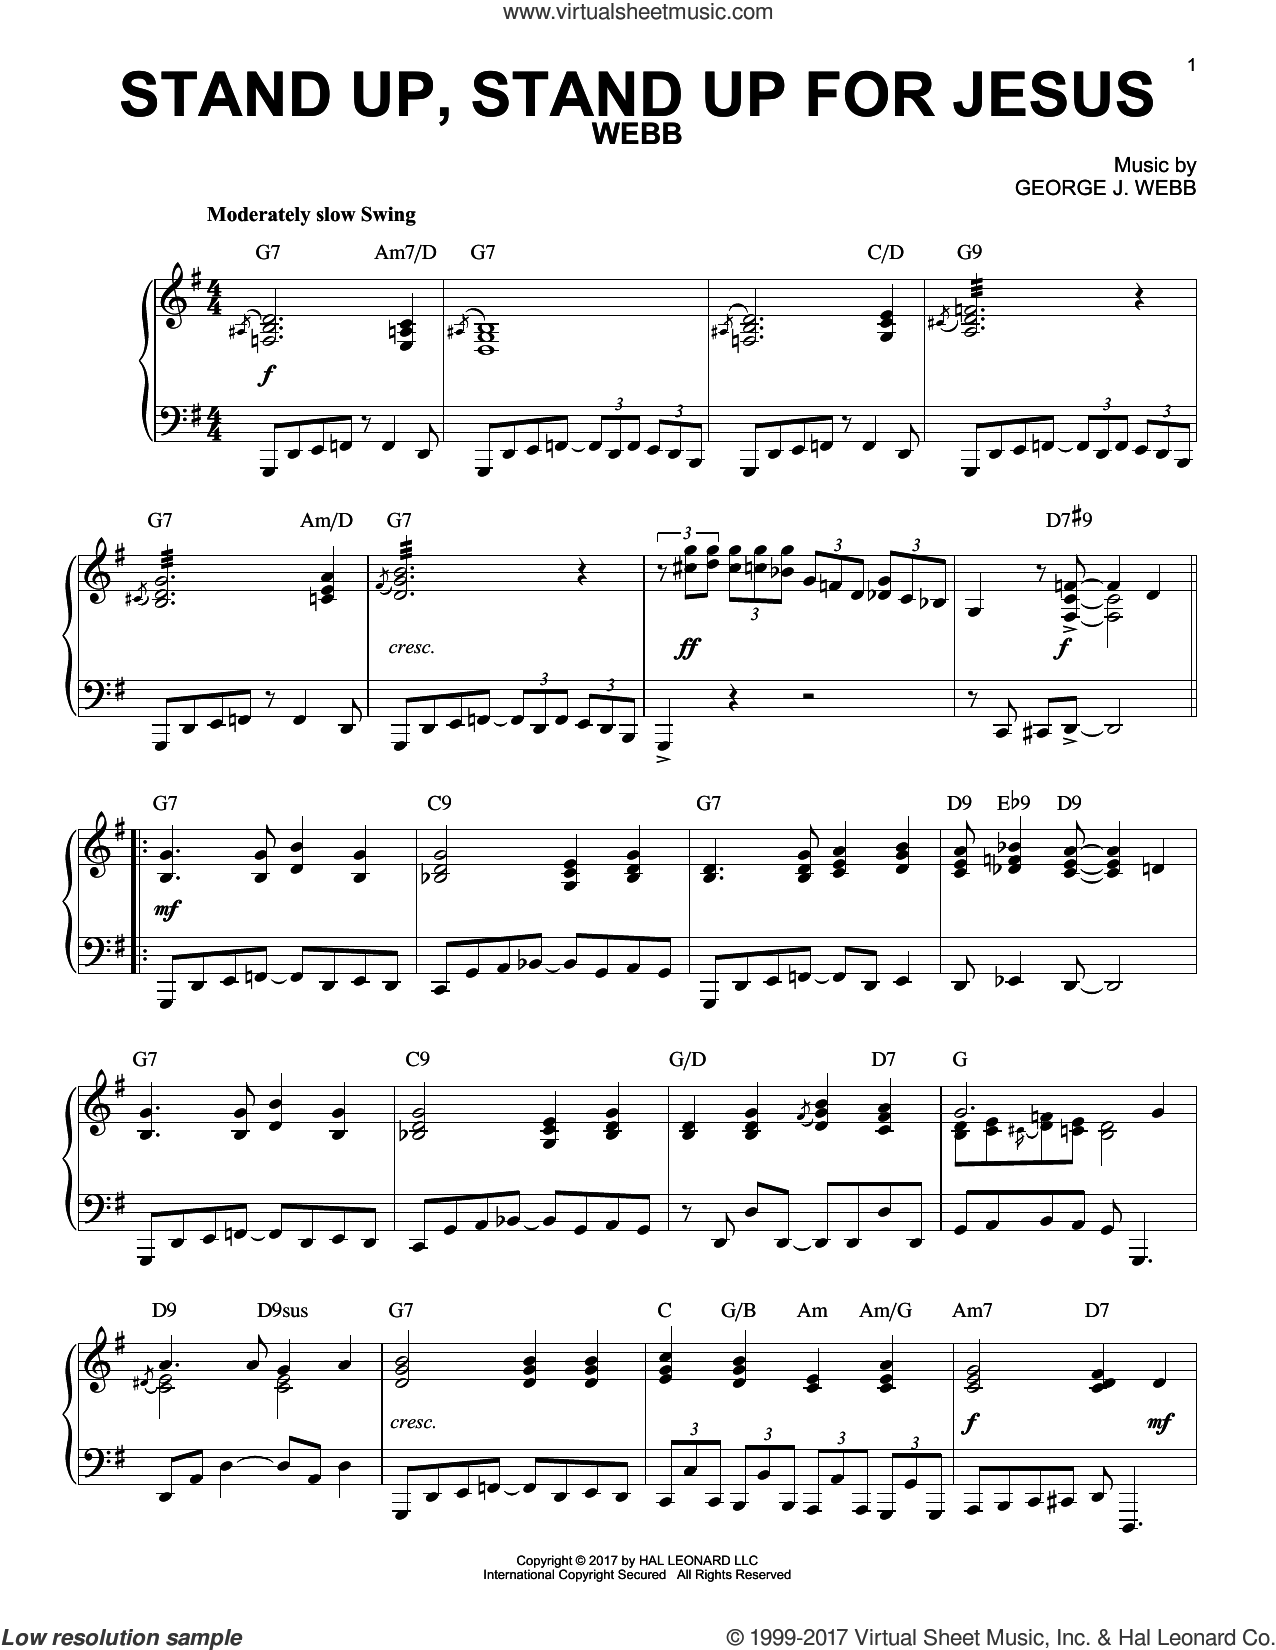 Stand Up, Stand Up For Jesus [Jazz version] sheet music for piano solo by George Webb and George Duffield, Jr., intermediate skill level